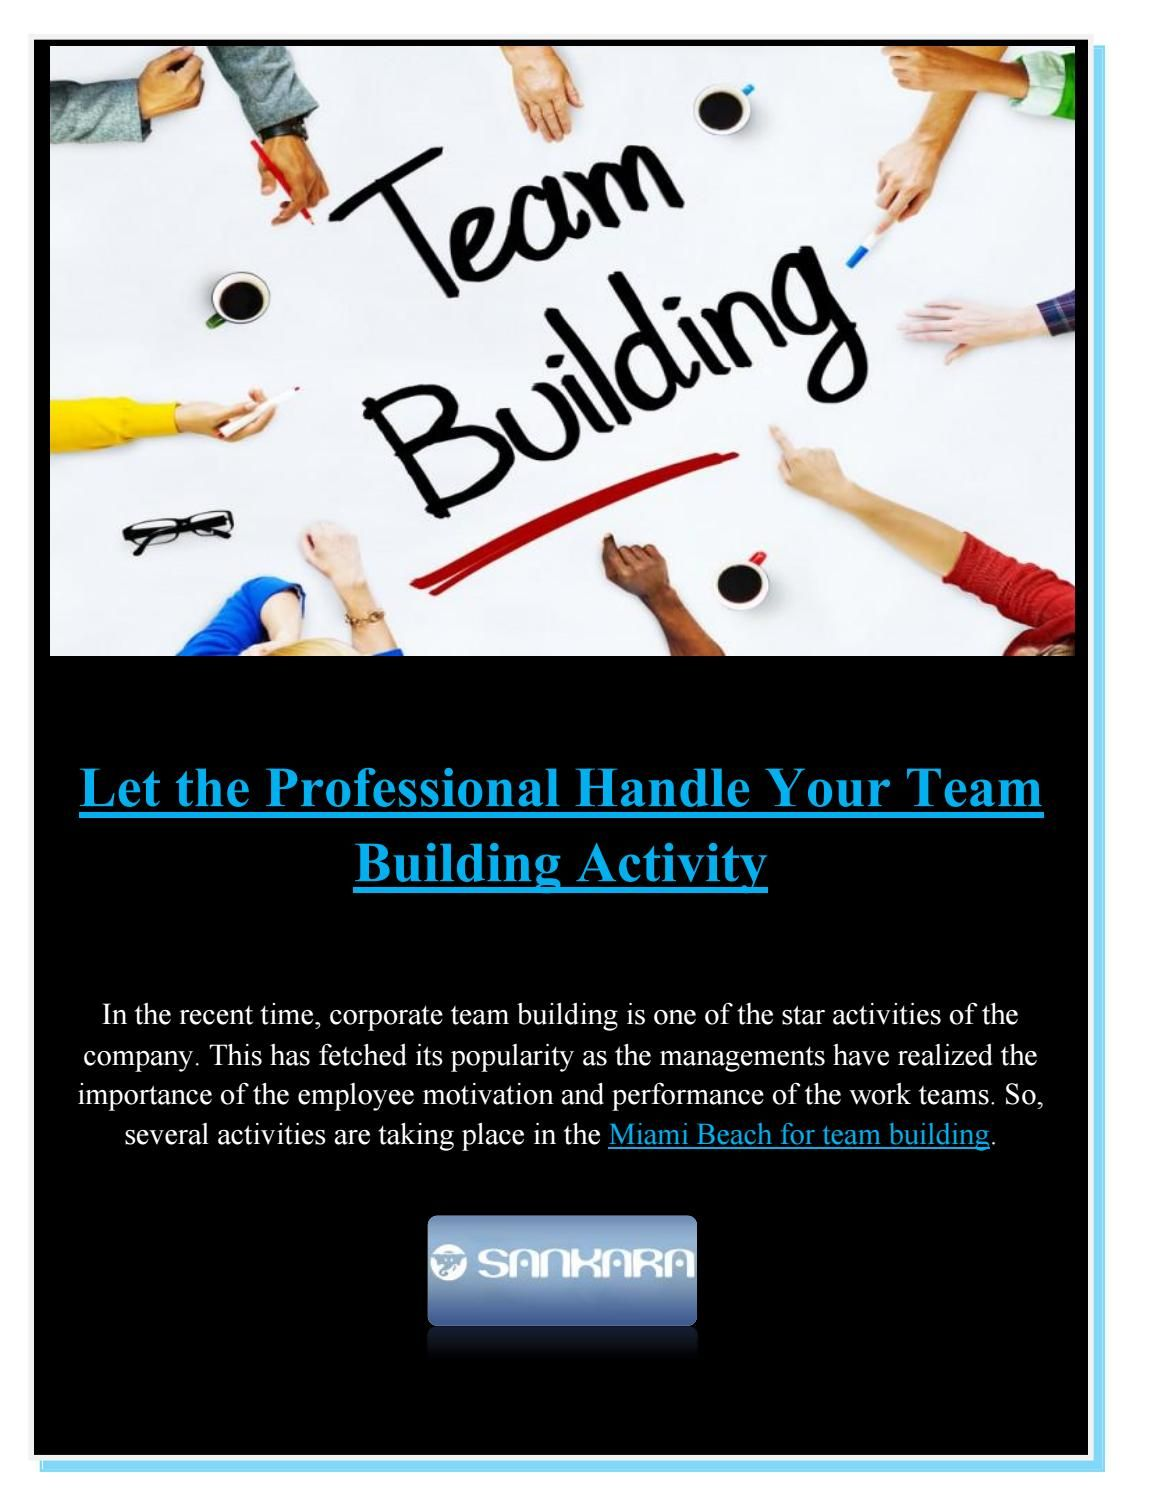 Let The Professional Handle Your Team Building Activity